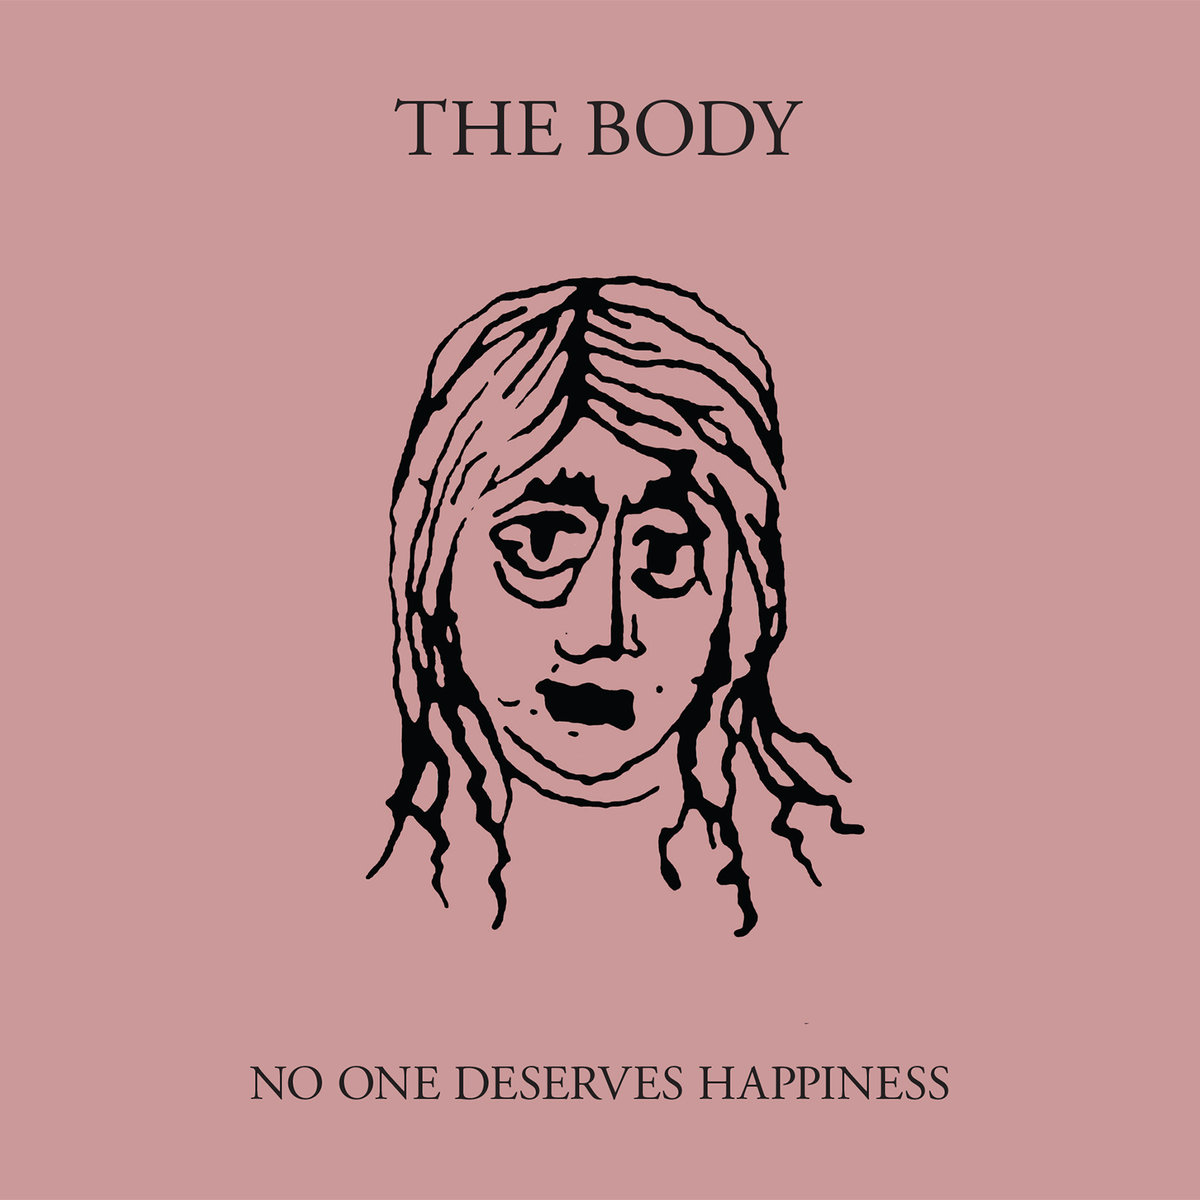 the body no one deserves happiness The Top 10 Metal Albums of 2016